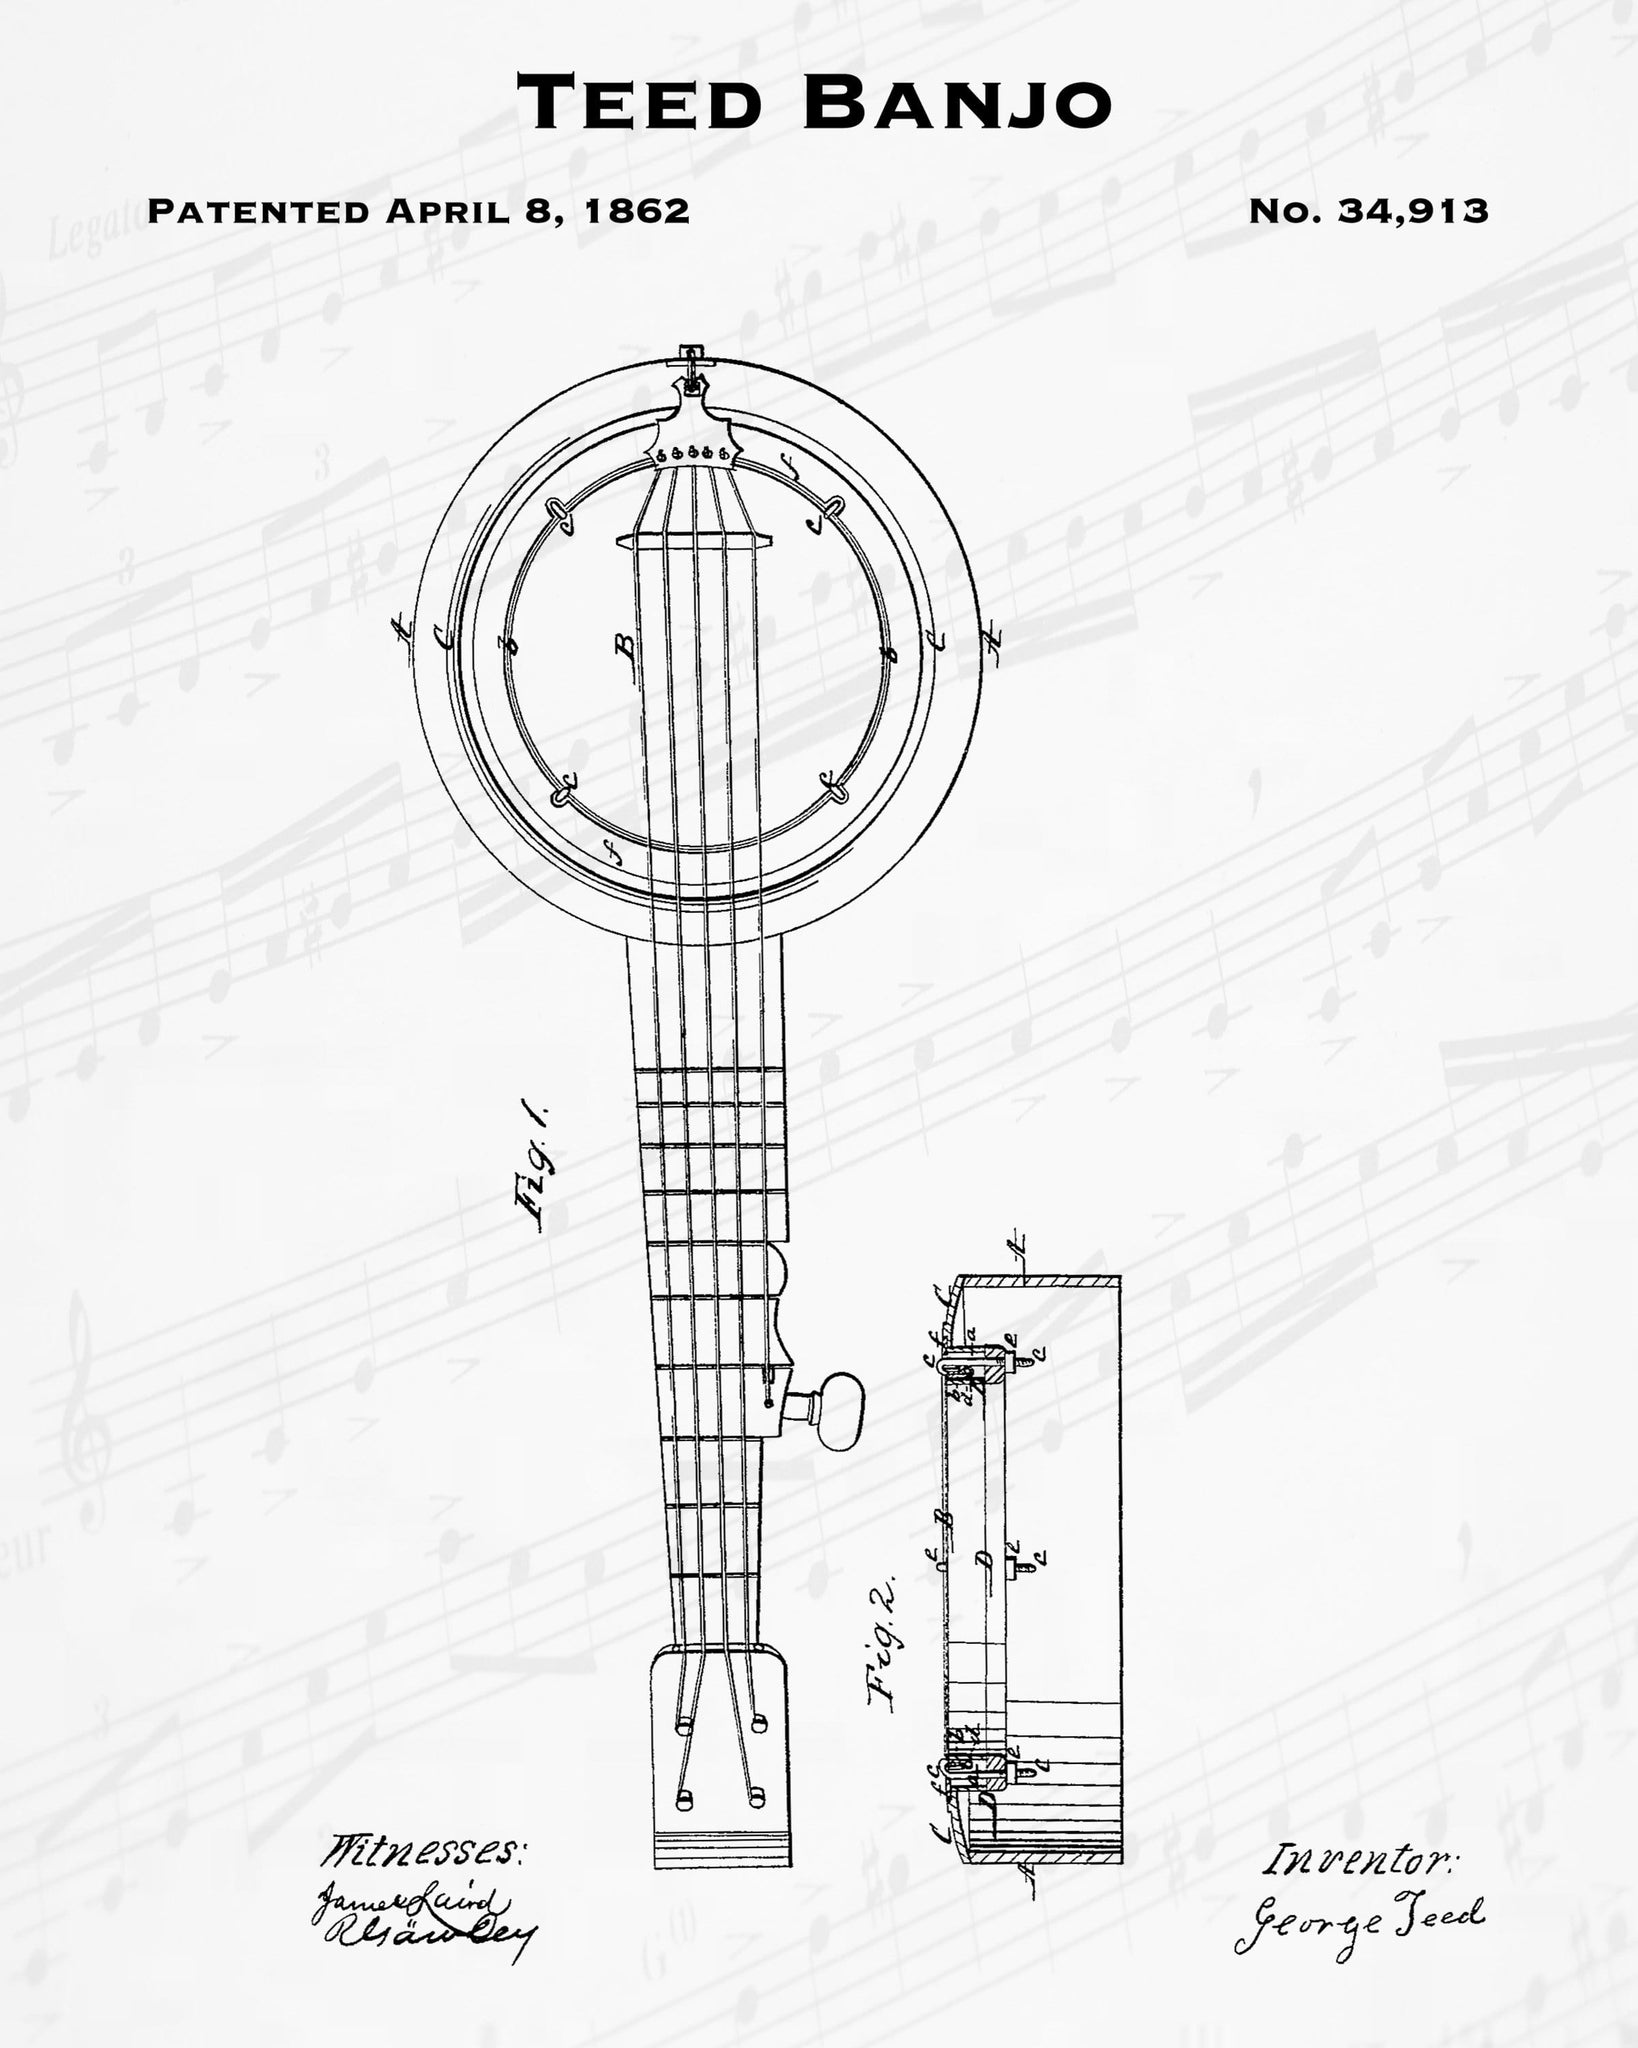 Teed Banjo Patent - Cheap Digital File - Stringed Instrument Wall Decor